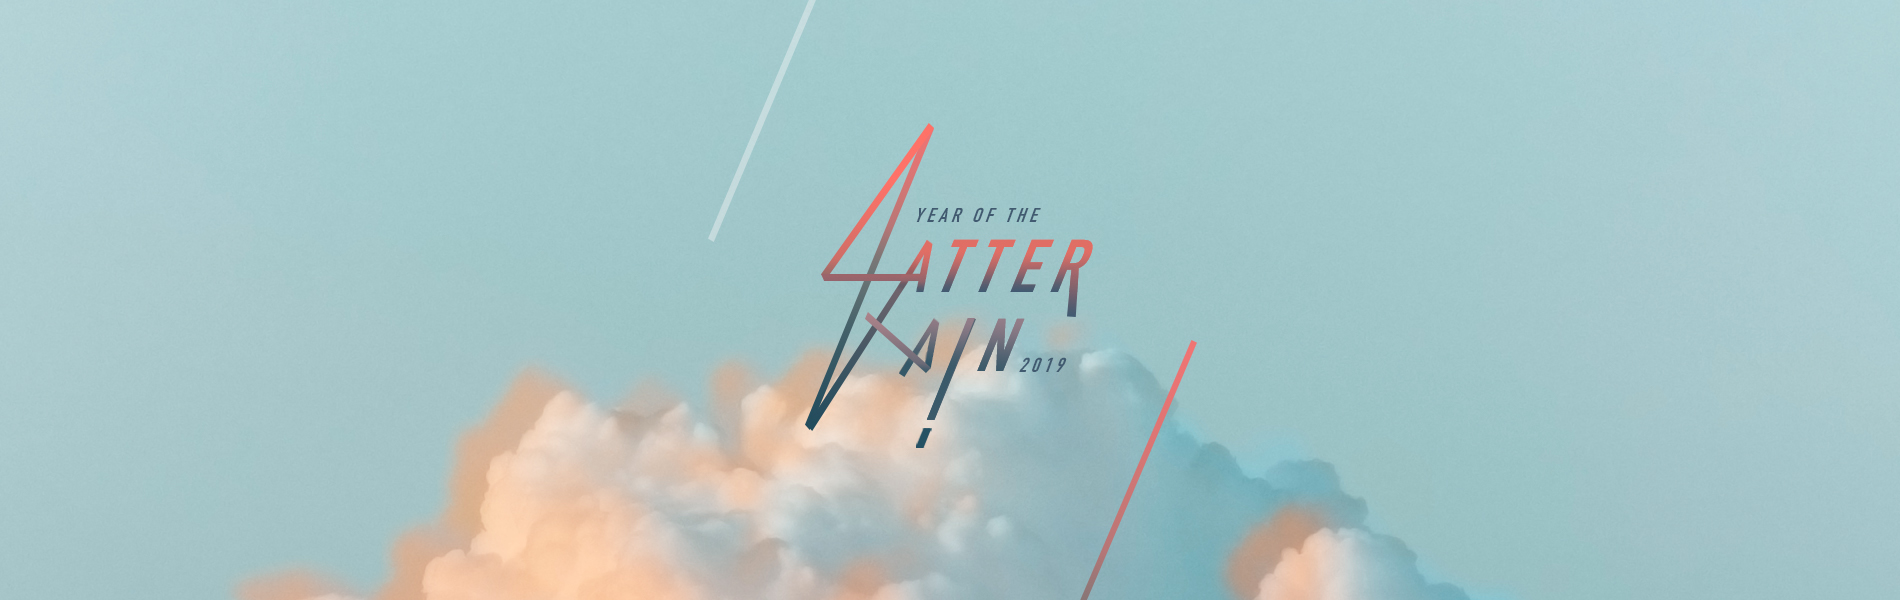 2019_02_Feb-Year-of-the-Latter-Rain_EN New Creation TV | Broadcasting the Gospel of Jesus